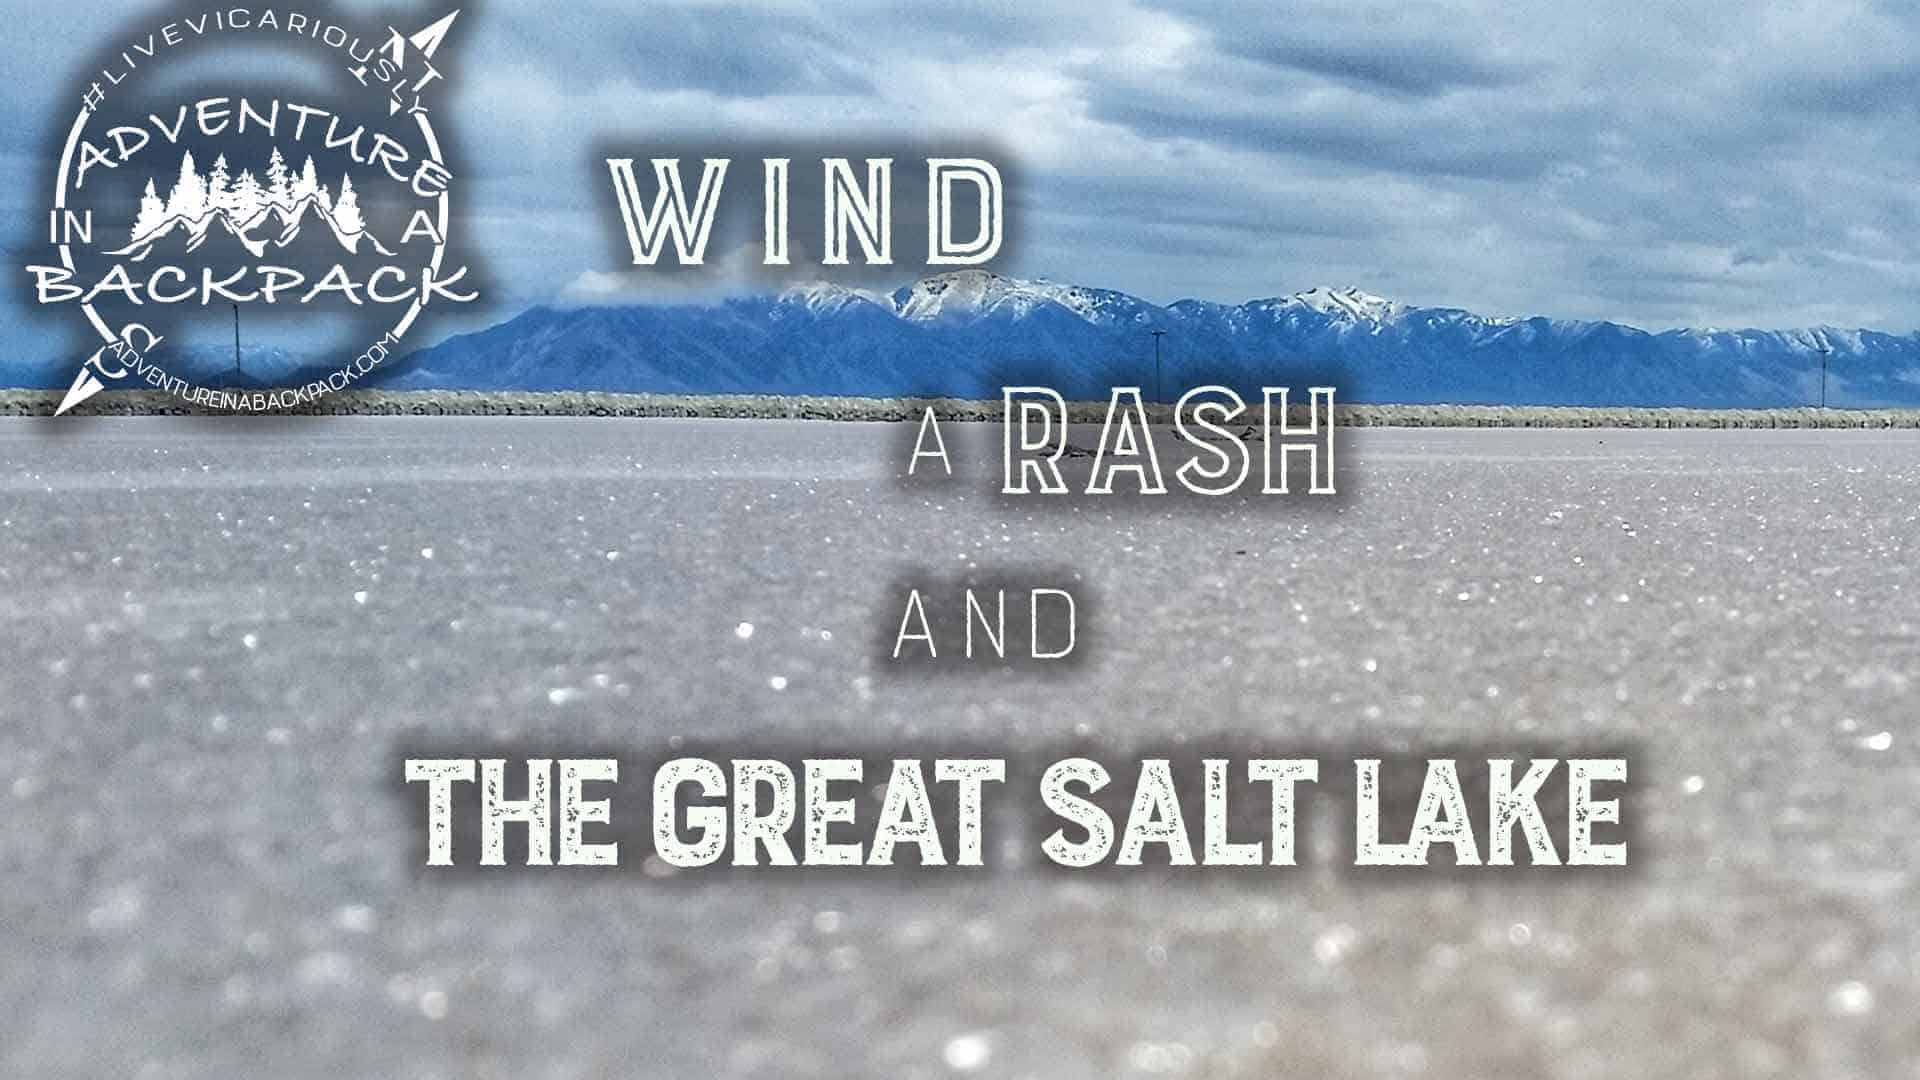 Wind, a Rash, and The Great Salt Lake